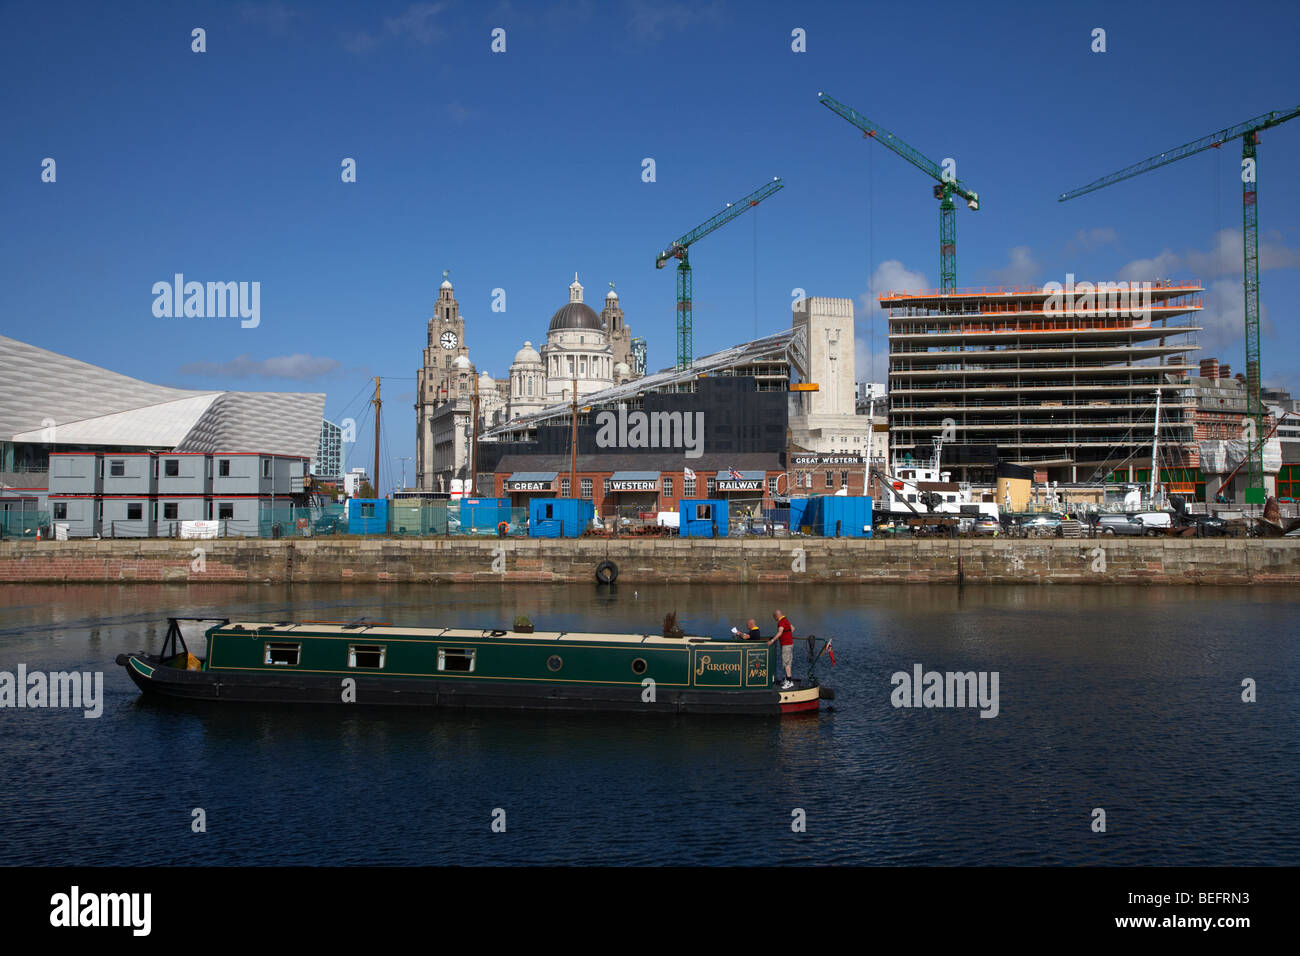 canal narrowboat on the link between the liverpool leeds canal and the albert dock liverpool merseyside england - Stock Image